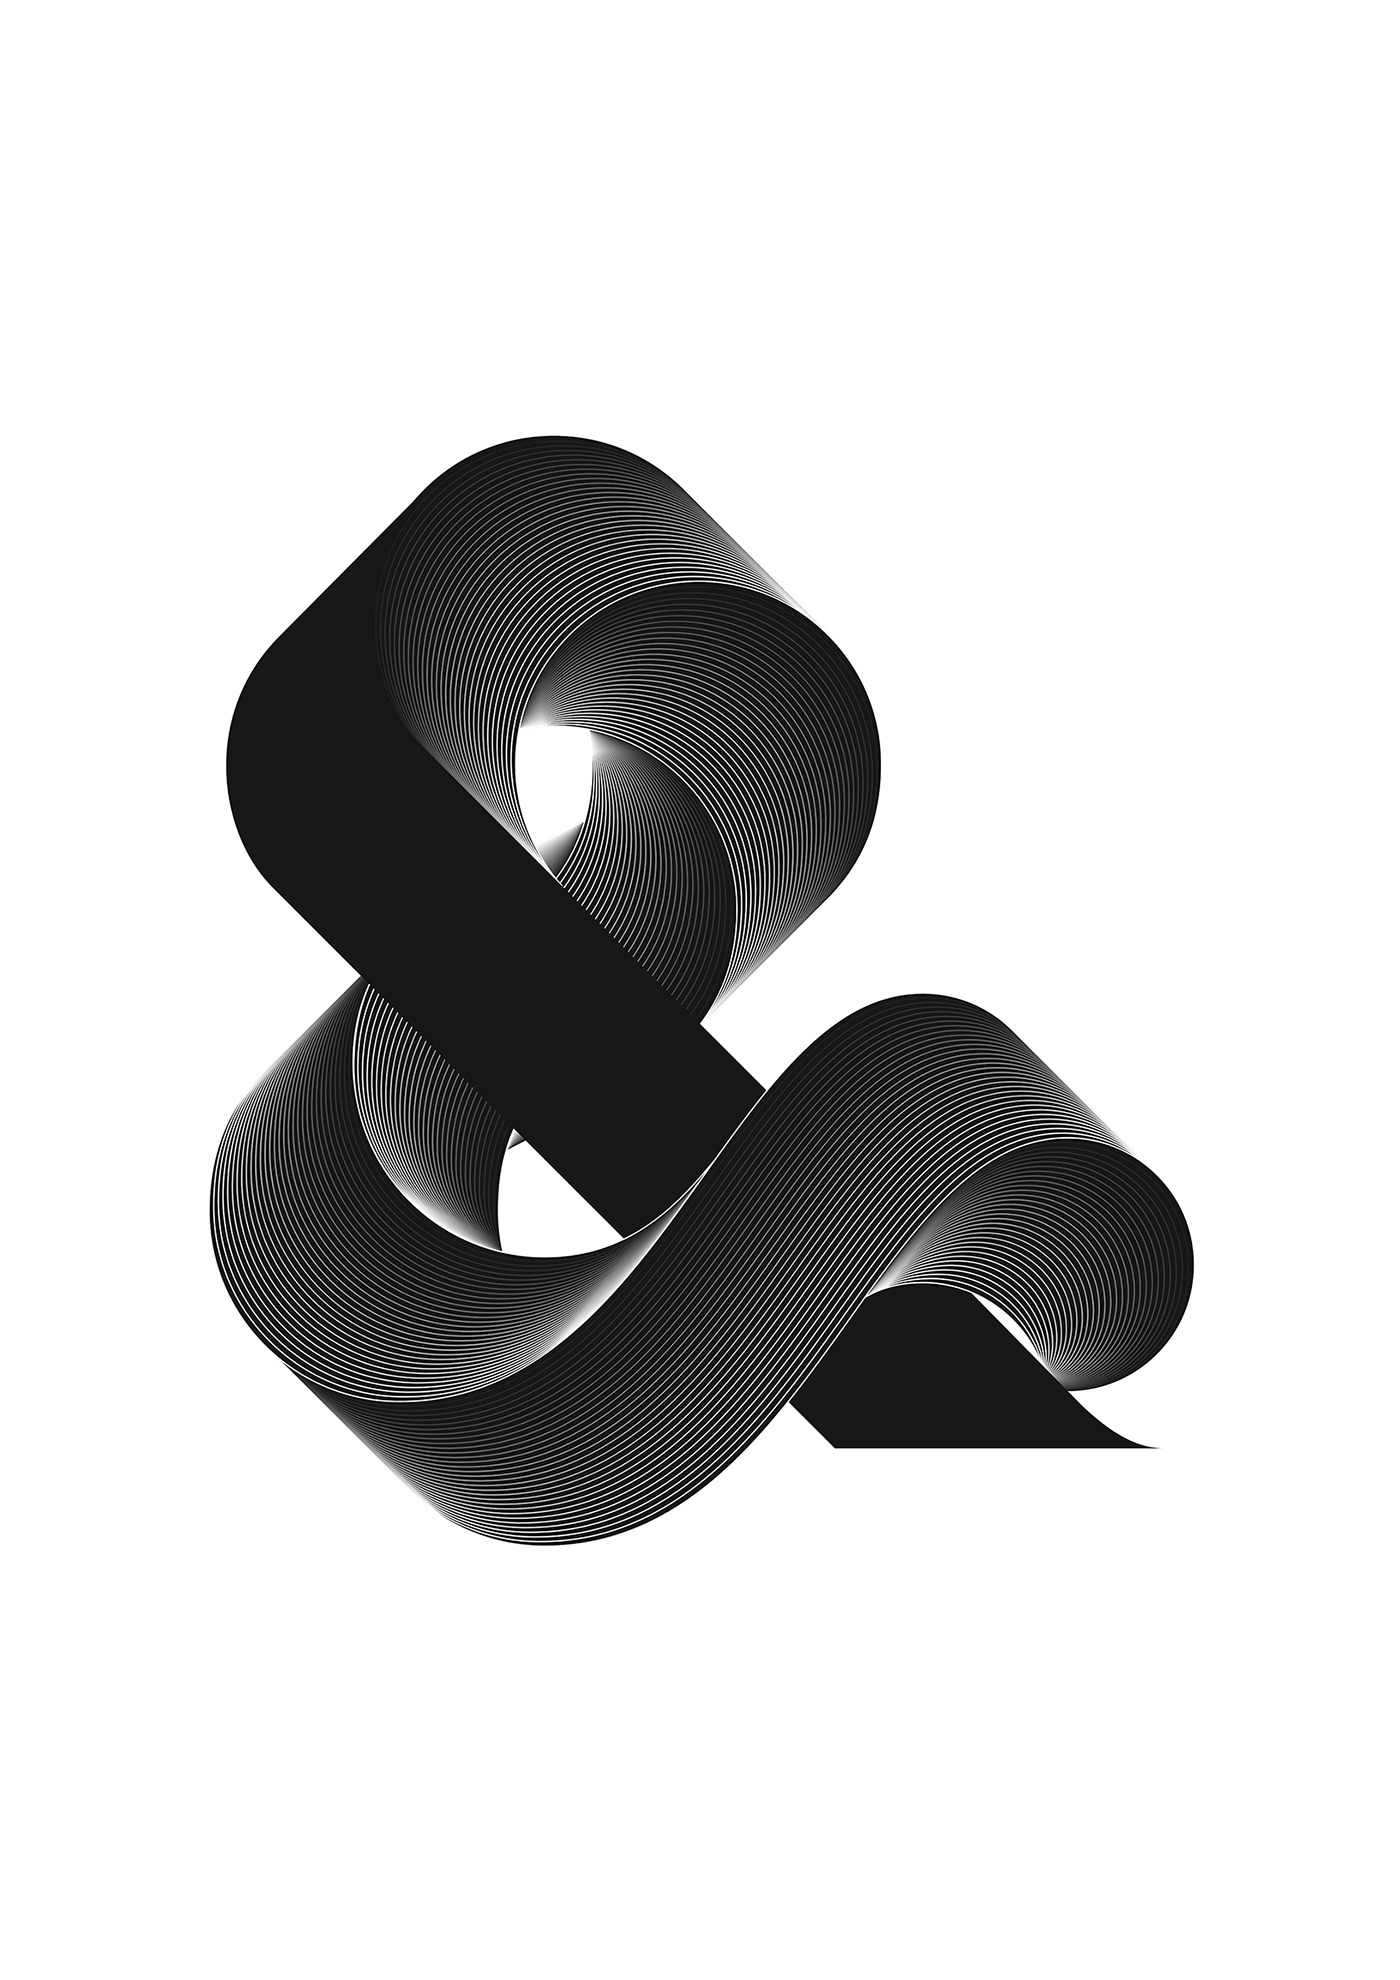 the typography work of anthony james i like to play around peoples perceptions of form and structure leaning more towards the abstract and surreal my philosophy on designing a typeface